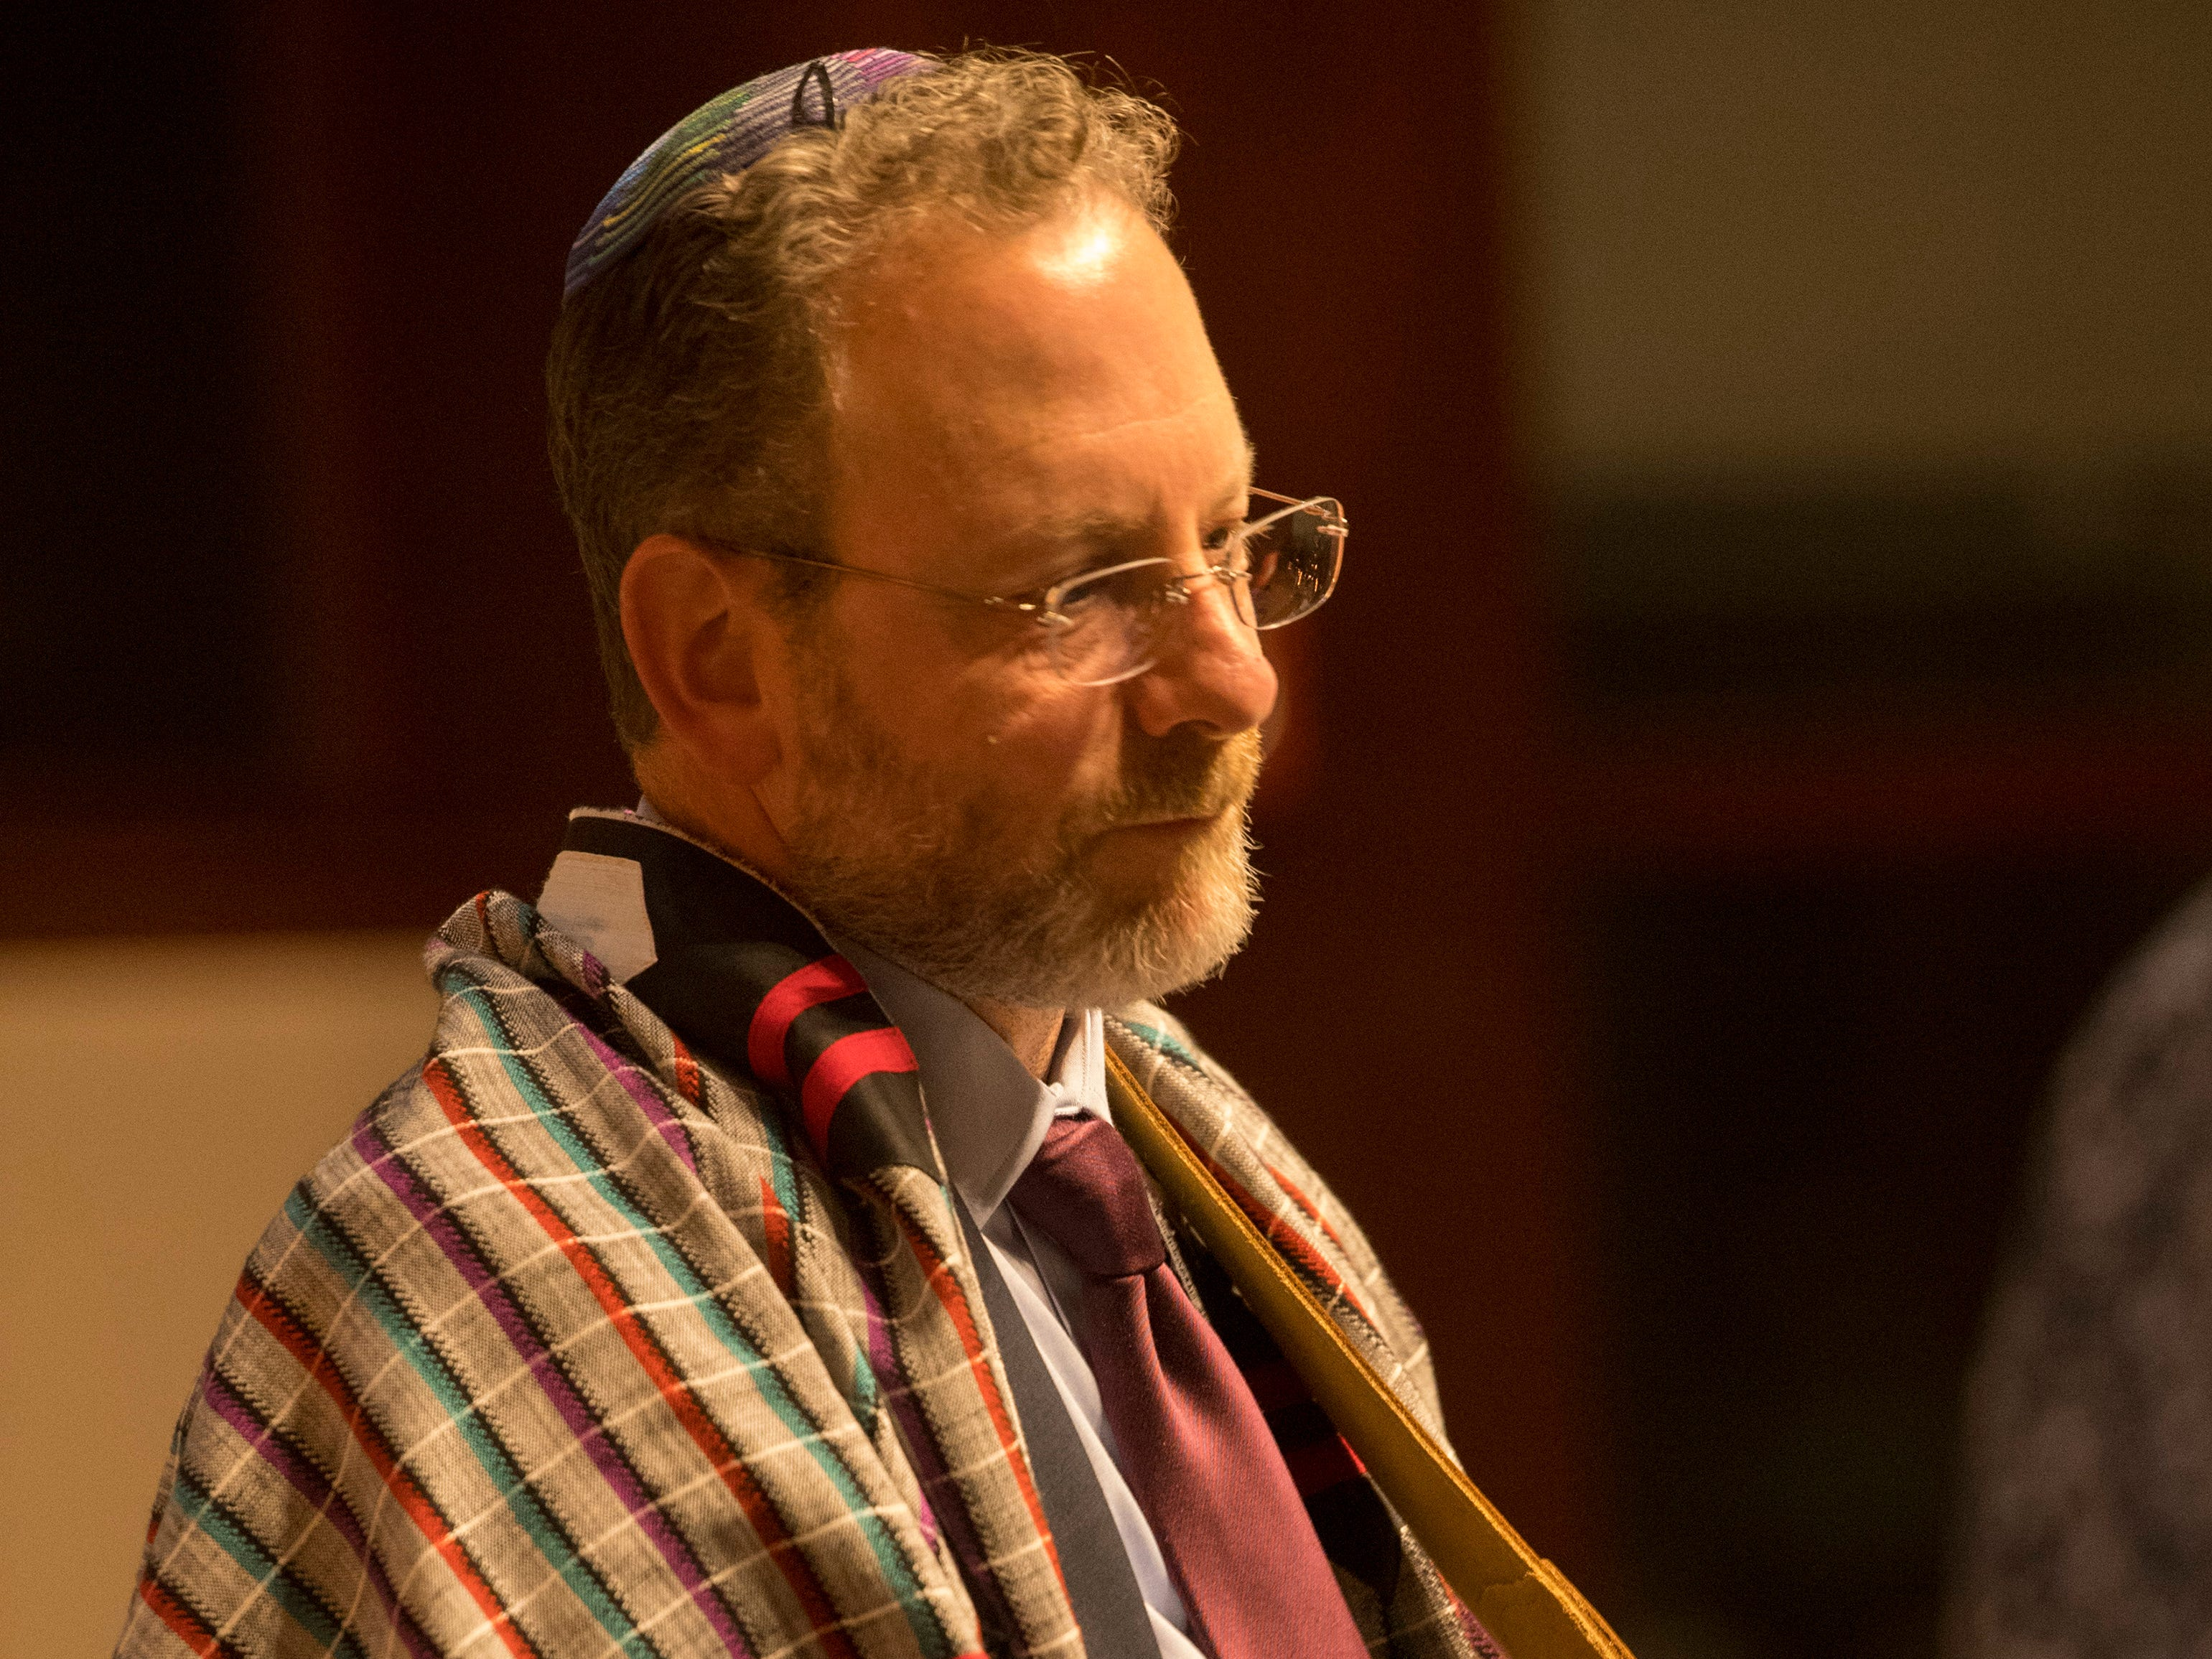 Rabbi Gary Mazo leads the congregation at Temple Adaith B'Nai Israel in Evansville in song at Shabbat services Friday night. The synagogue invited members of the community to join in the service which marks the start of the Jewish sabbath. The killing of 11 worshippers at a Pittsburgh, Penn., synagogue last Saturday was the catalyst for the national #ShowUpForShabbat event.